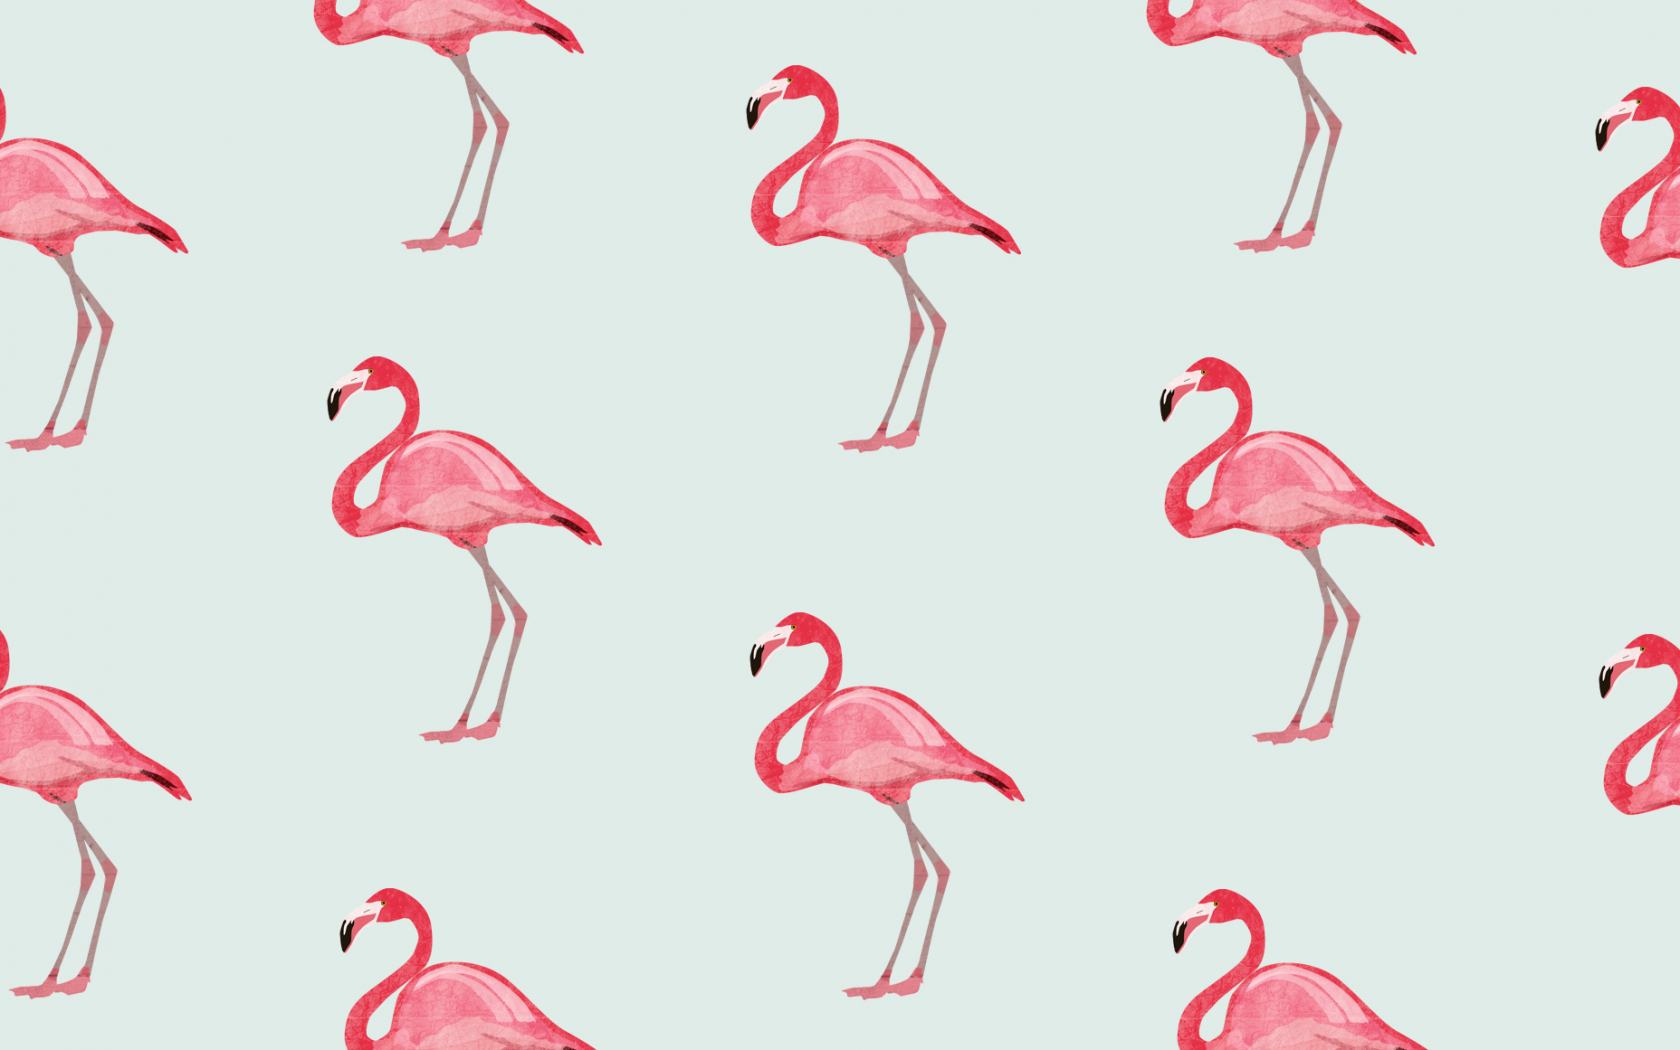 Free Download Flamingo Wallpaper Download 1856x1161 For Your